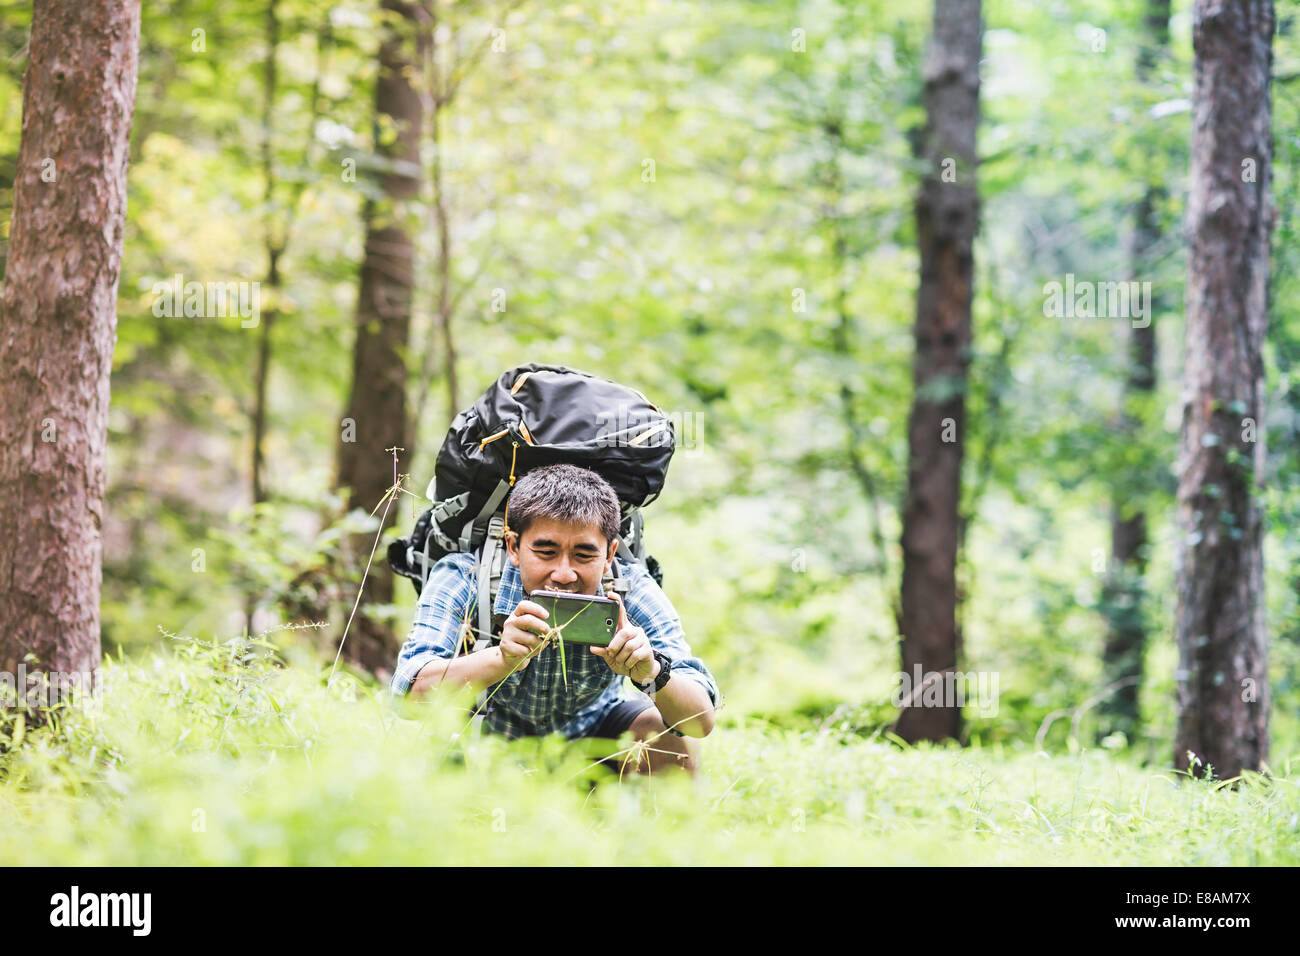 Hiker taking photo on camera phone in forest - Stock Image